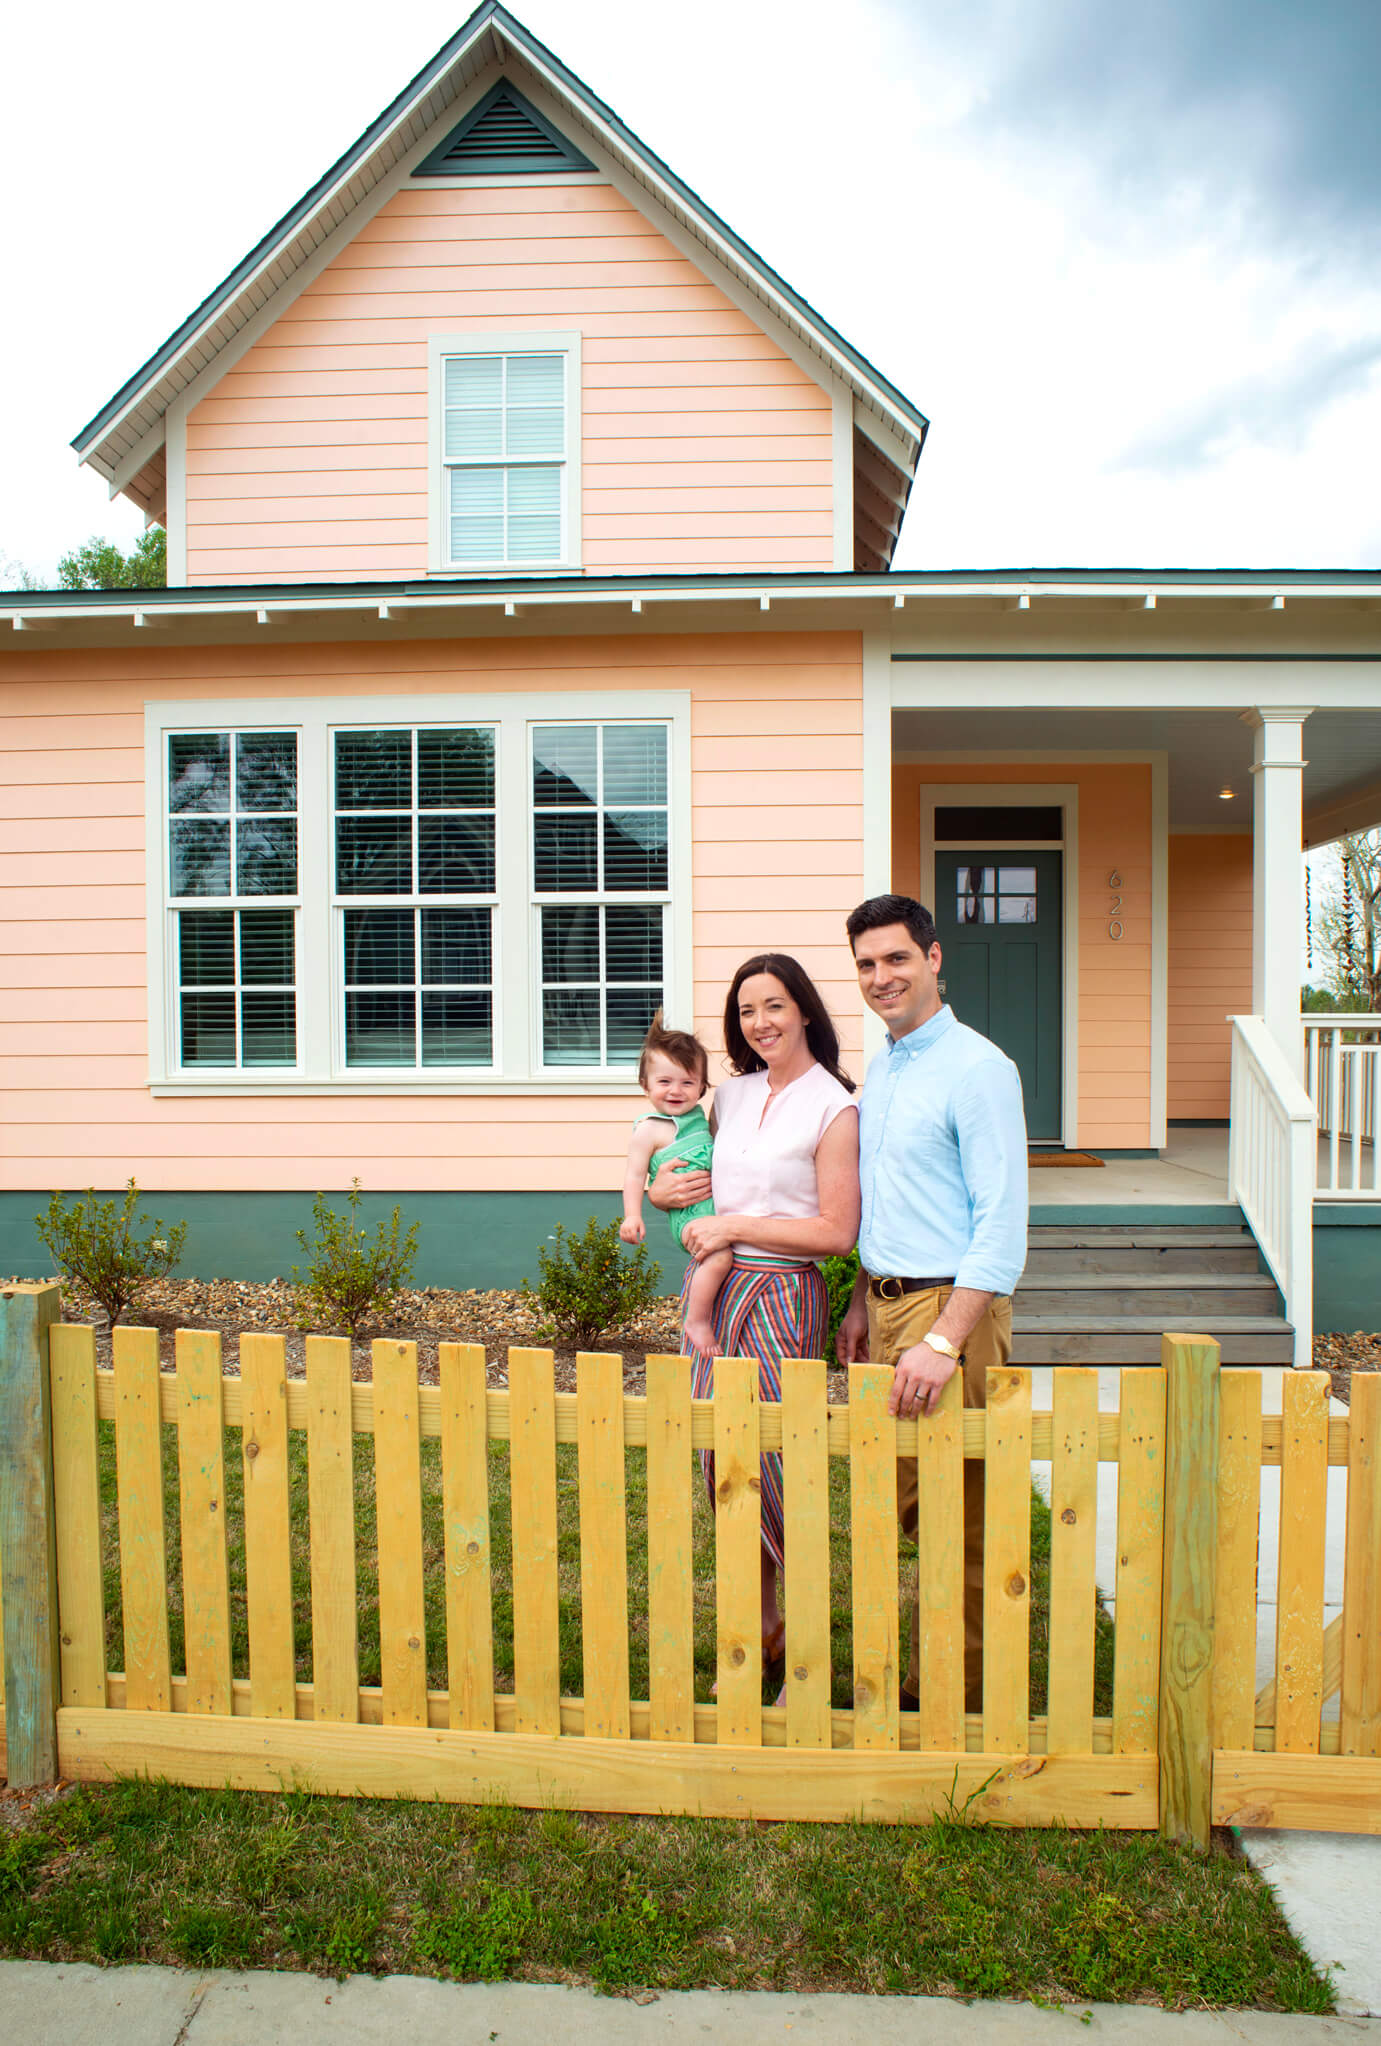 Adam and Jill Fogelman with their son, Jude, in front of their Pettaway house image